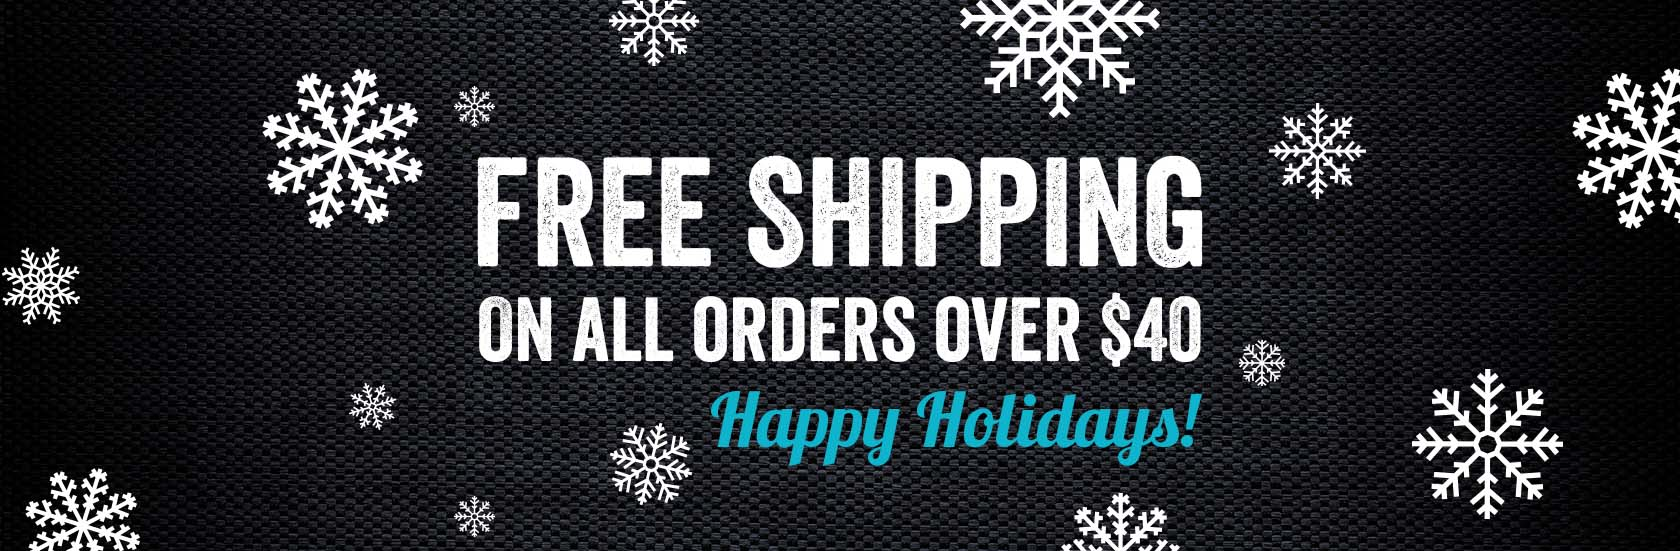 Free Holiday Shipping